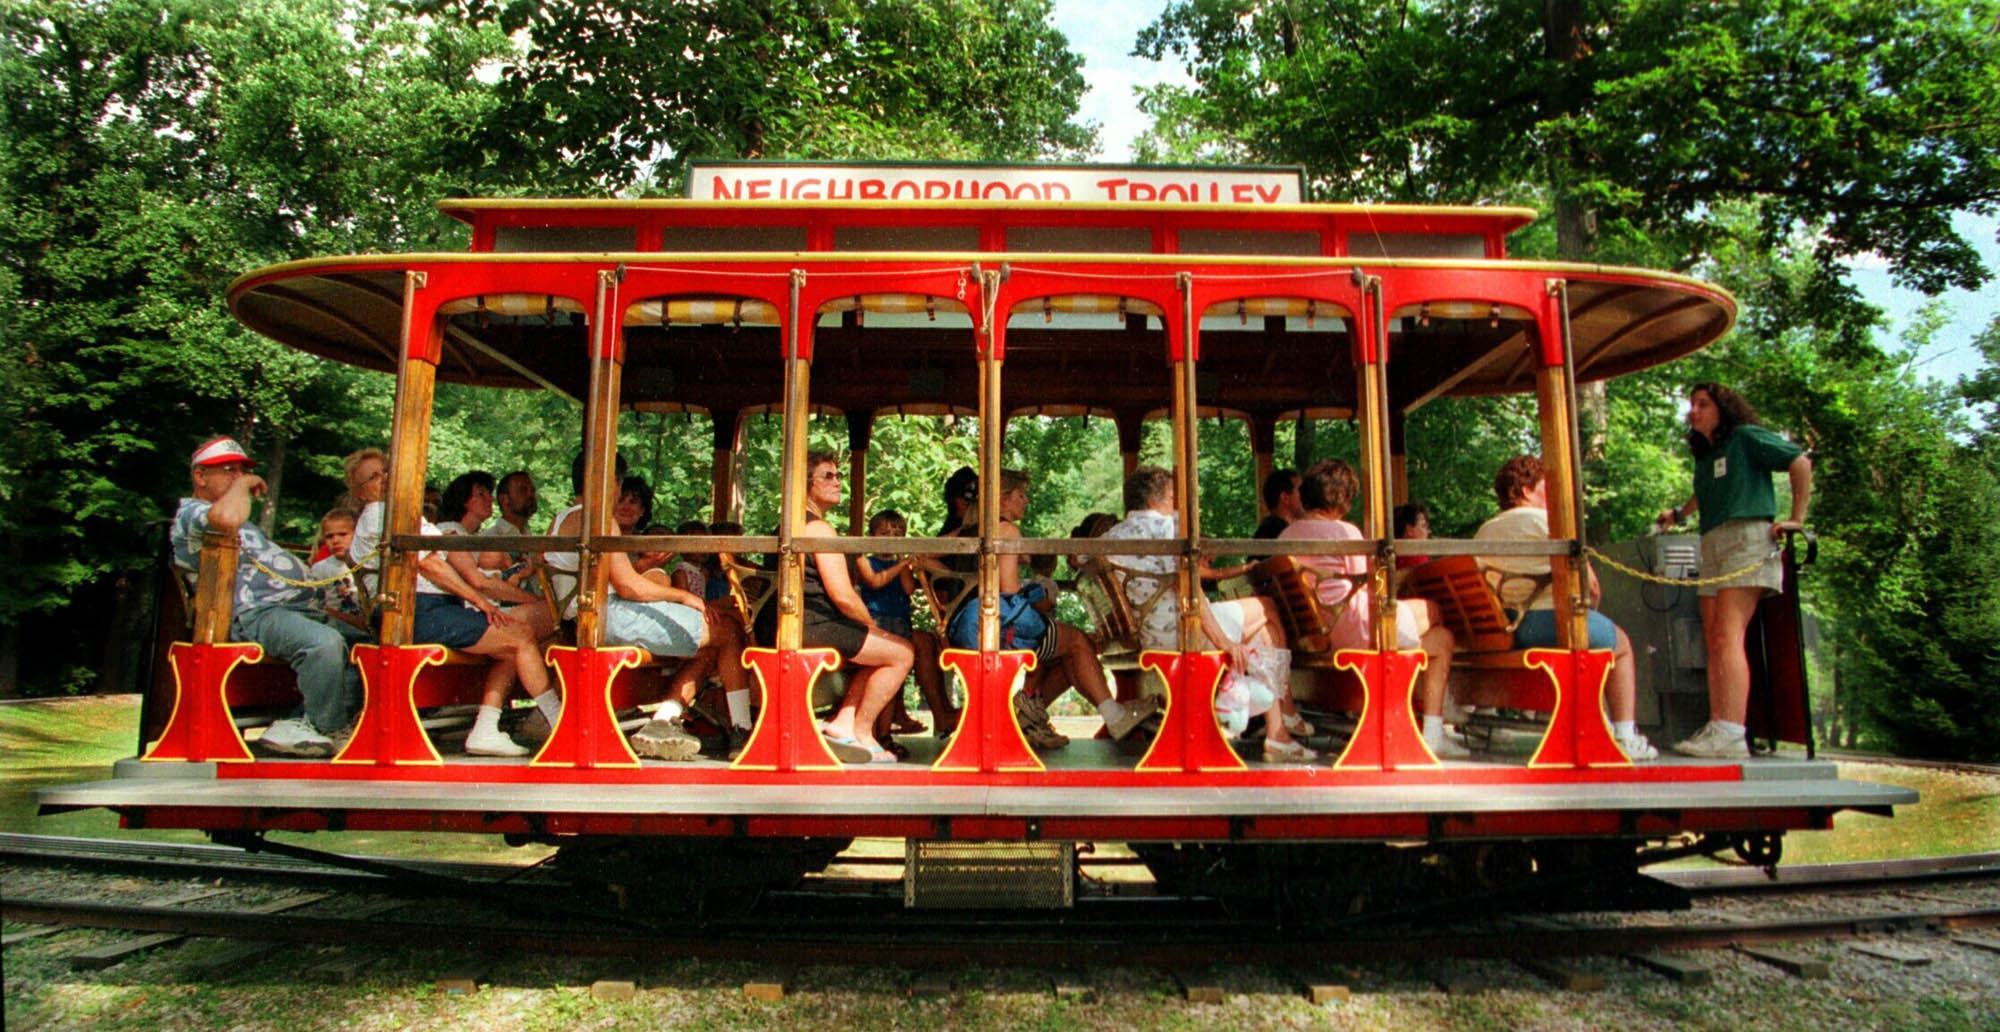 File:IDLEWILD MR ROGERS TROLLEY WIDE 200 6 00 8 - panoramio